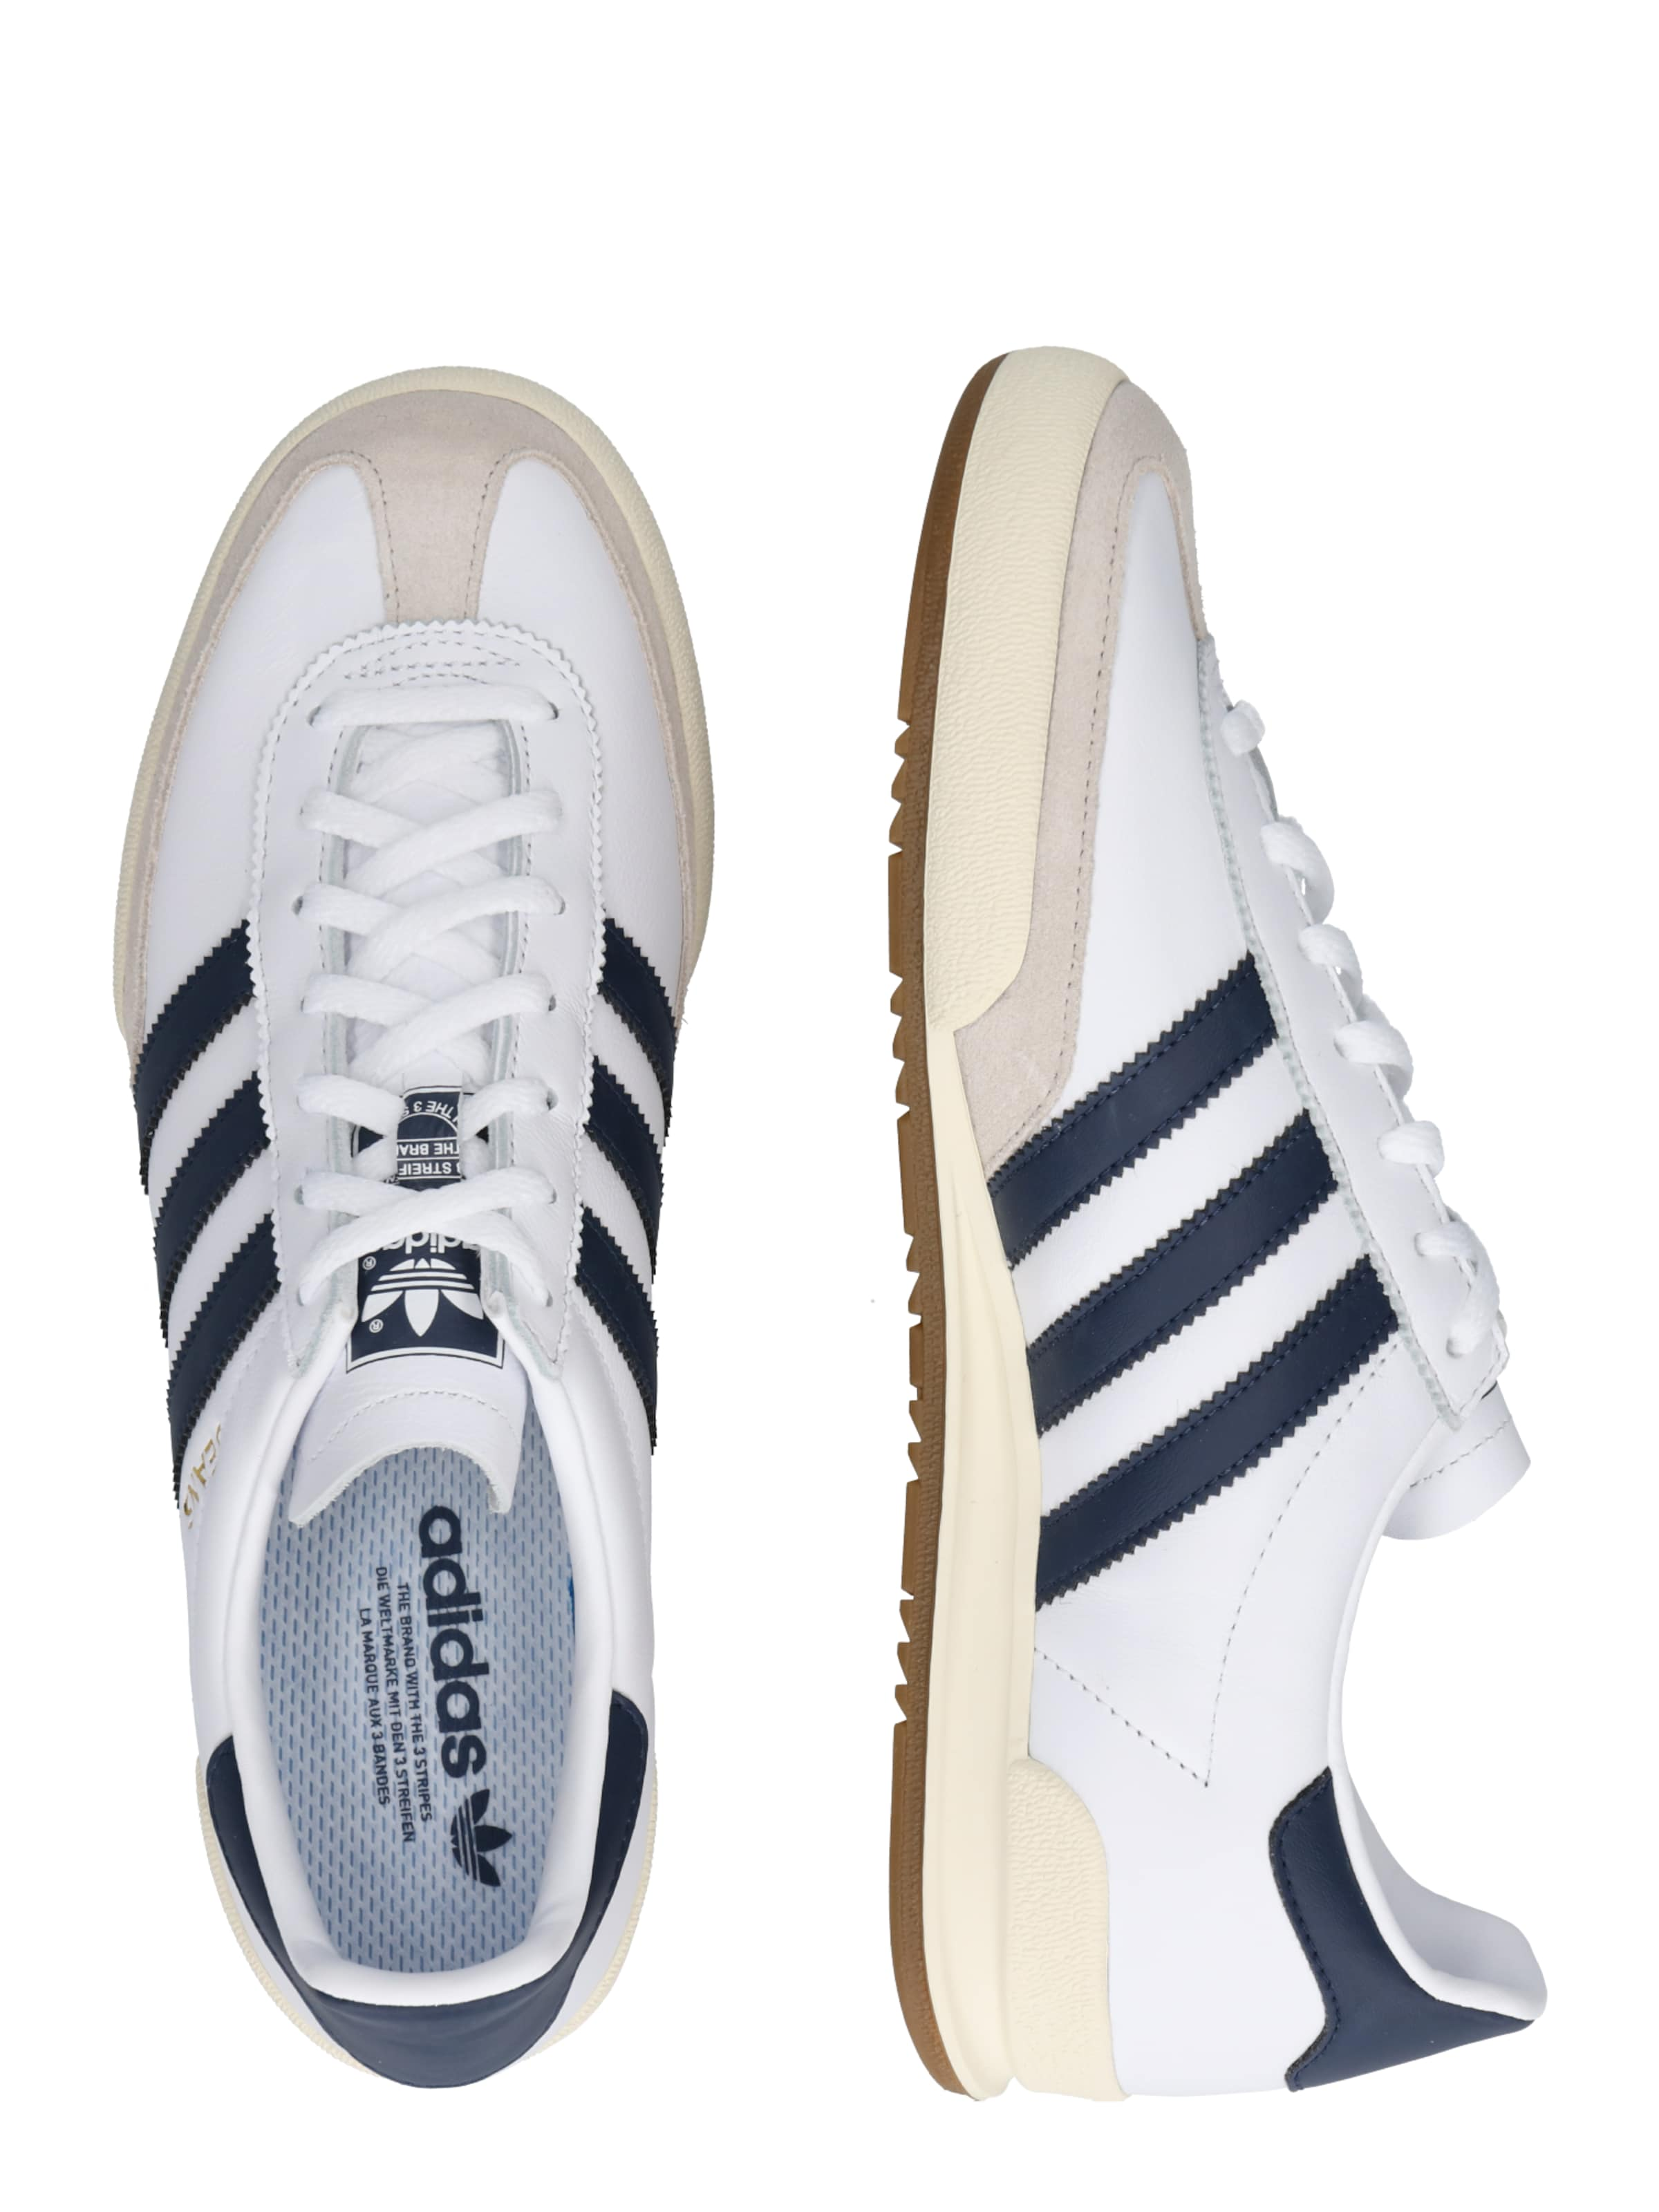 Sneaker Adidas NavyWeiß Originals In Sneaker Originals In Adidas NavyWeiß uTFKJcl13